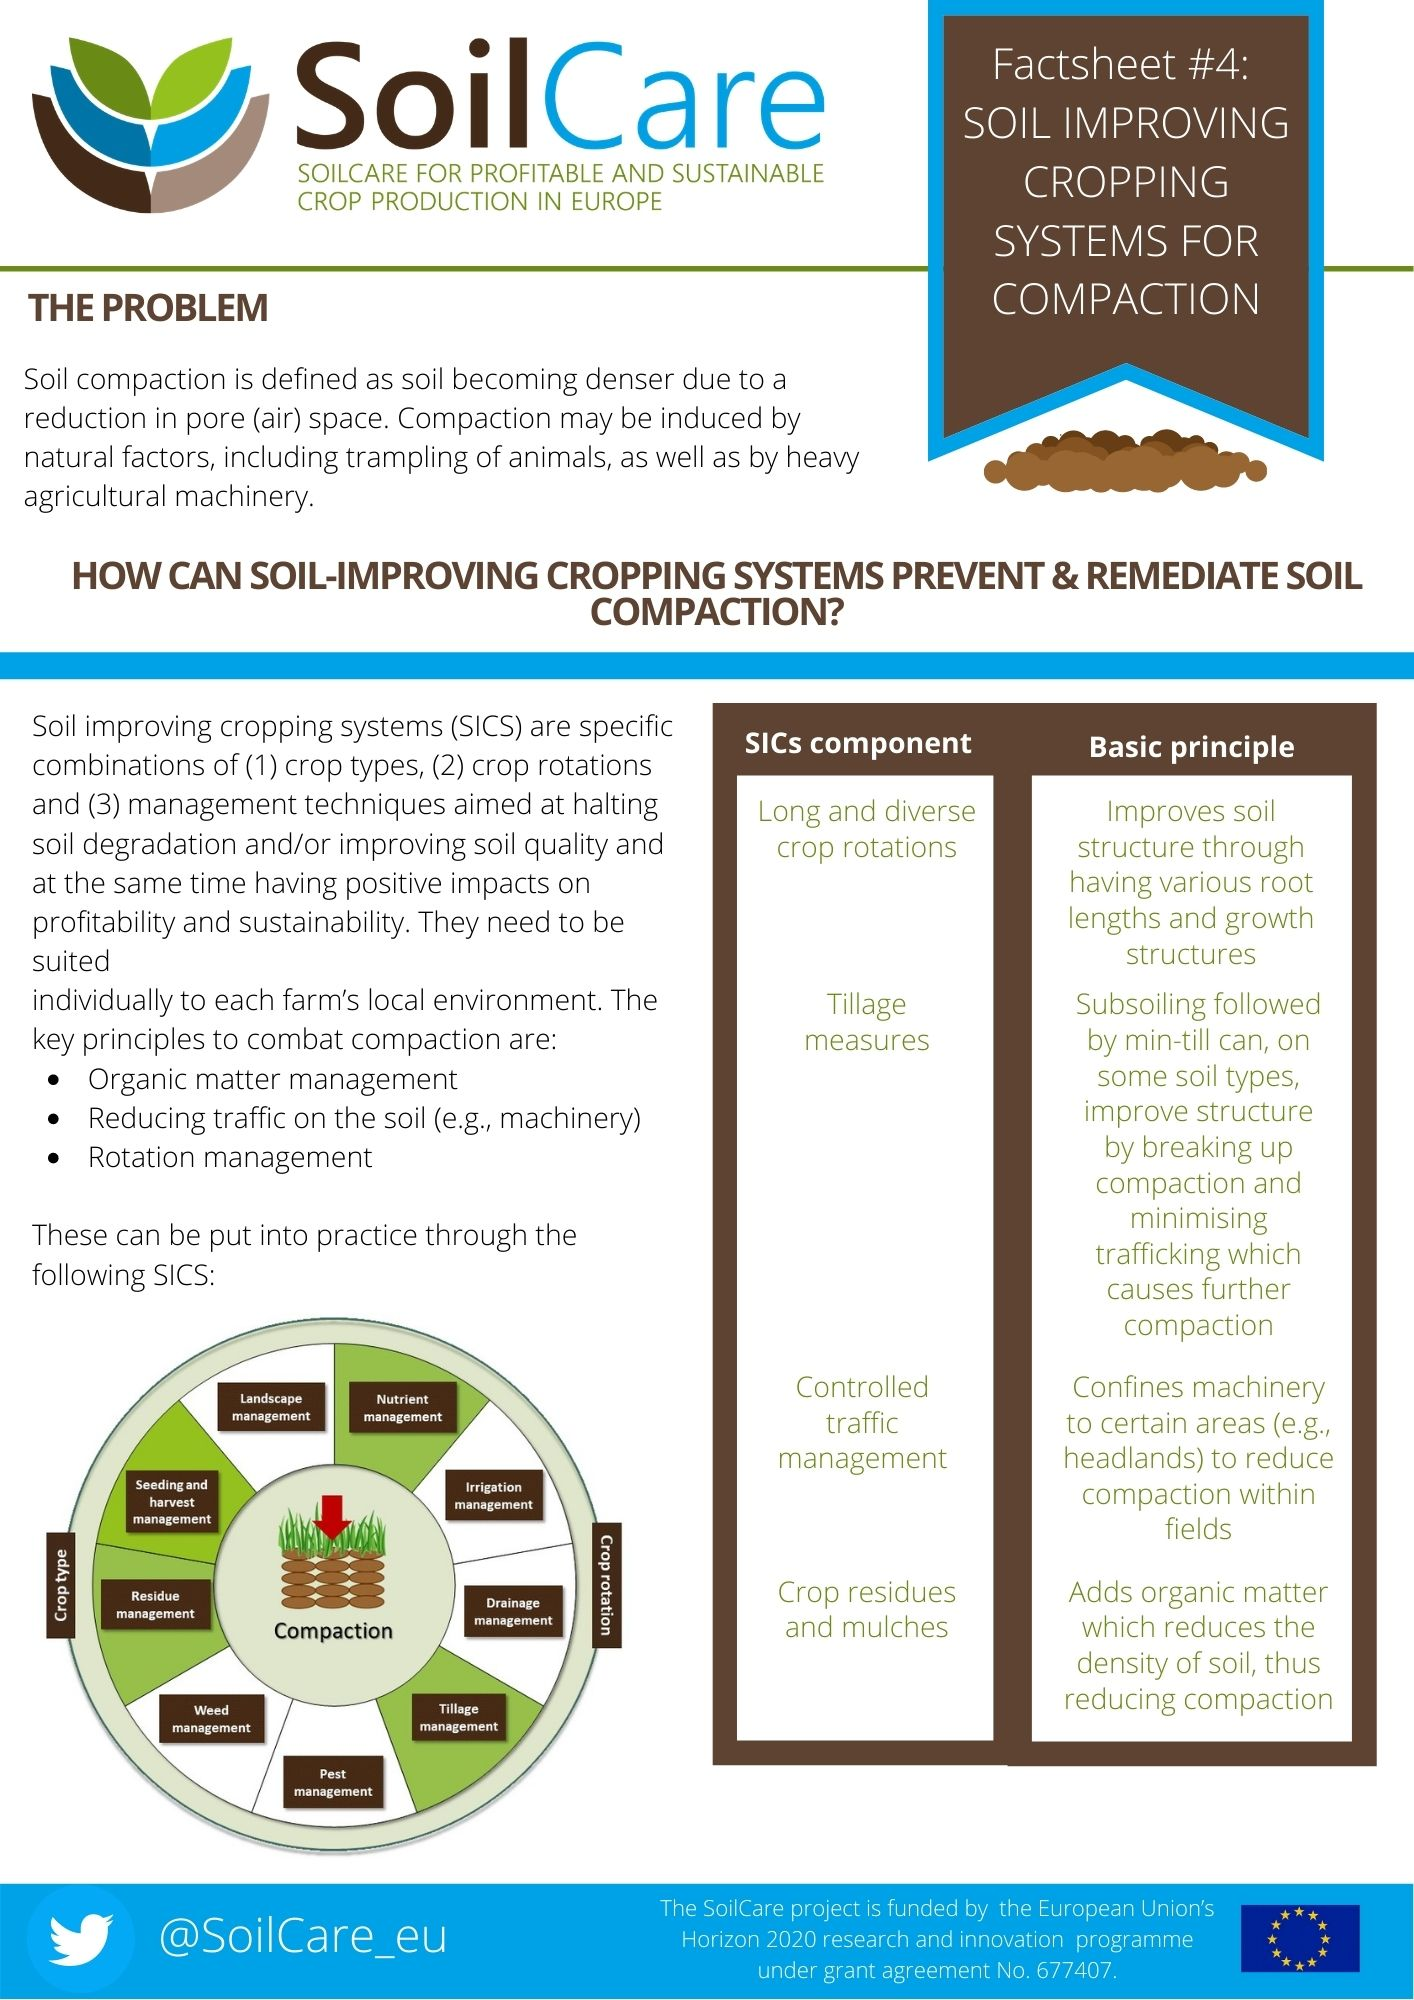 SoilCare compaction factsheet 2